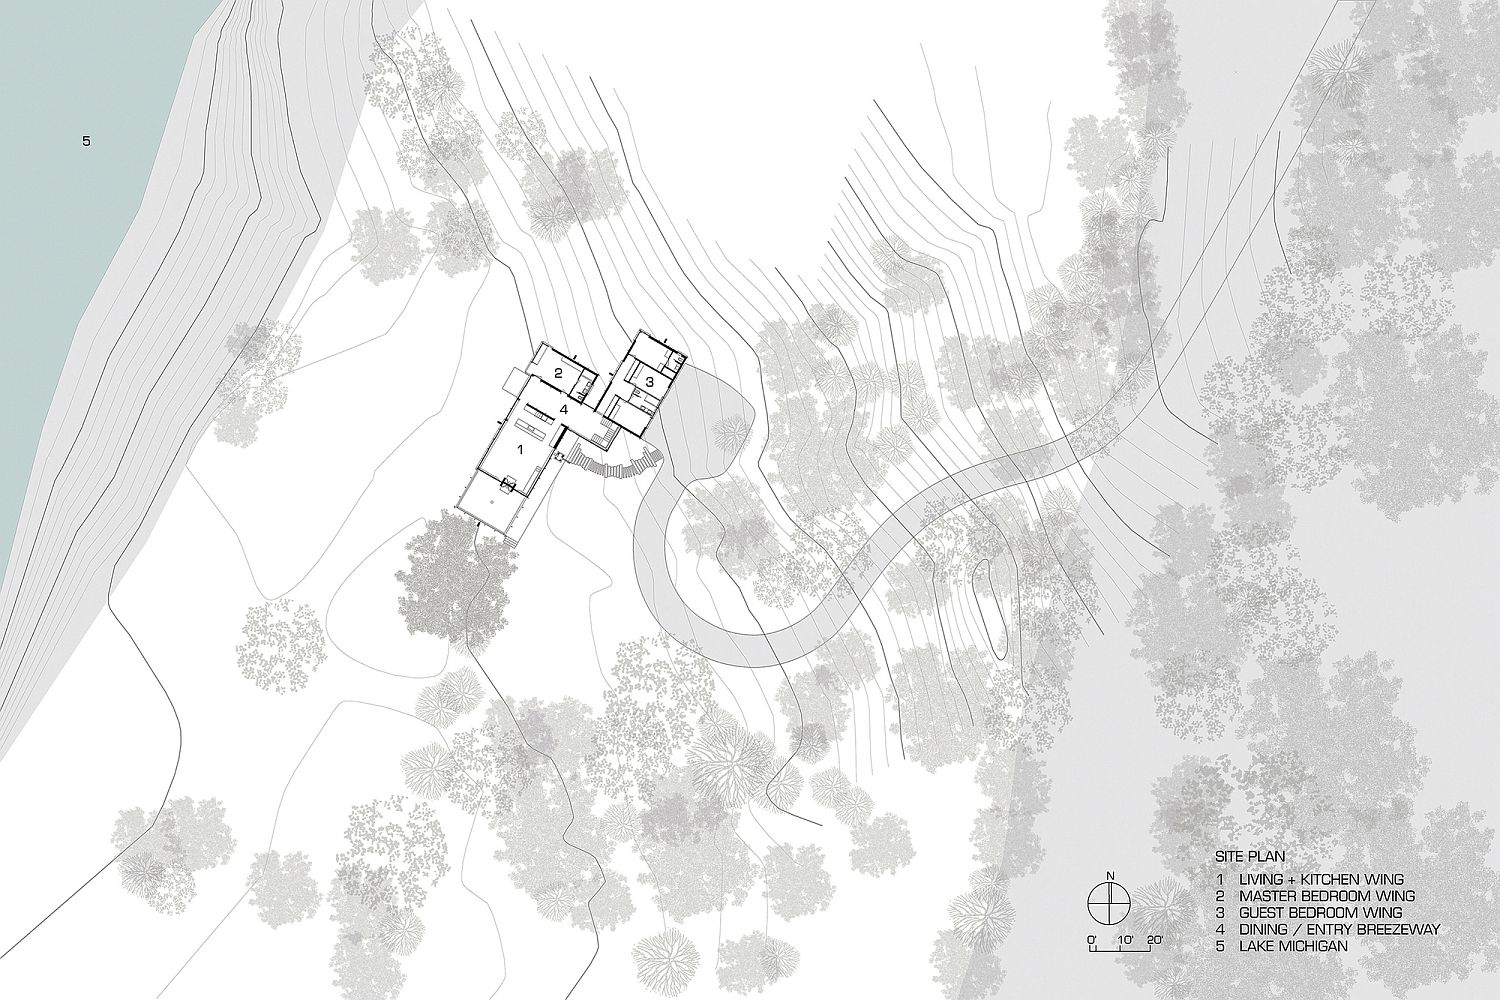 Site plan showcases the placement of the living area, bedrooms and dining space